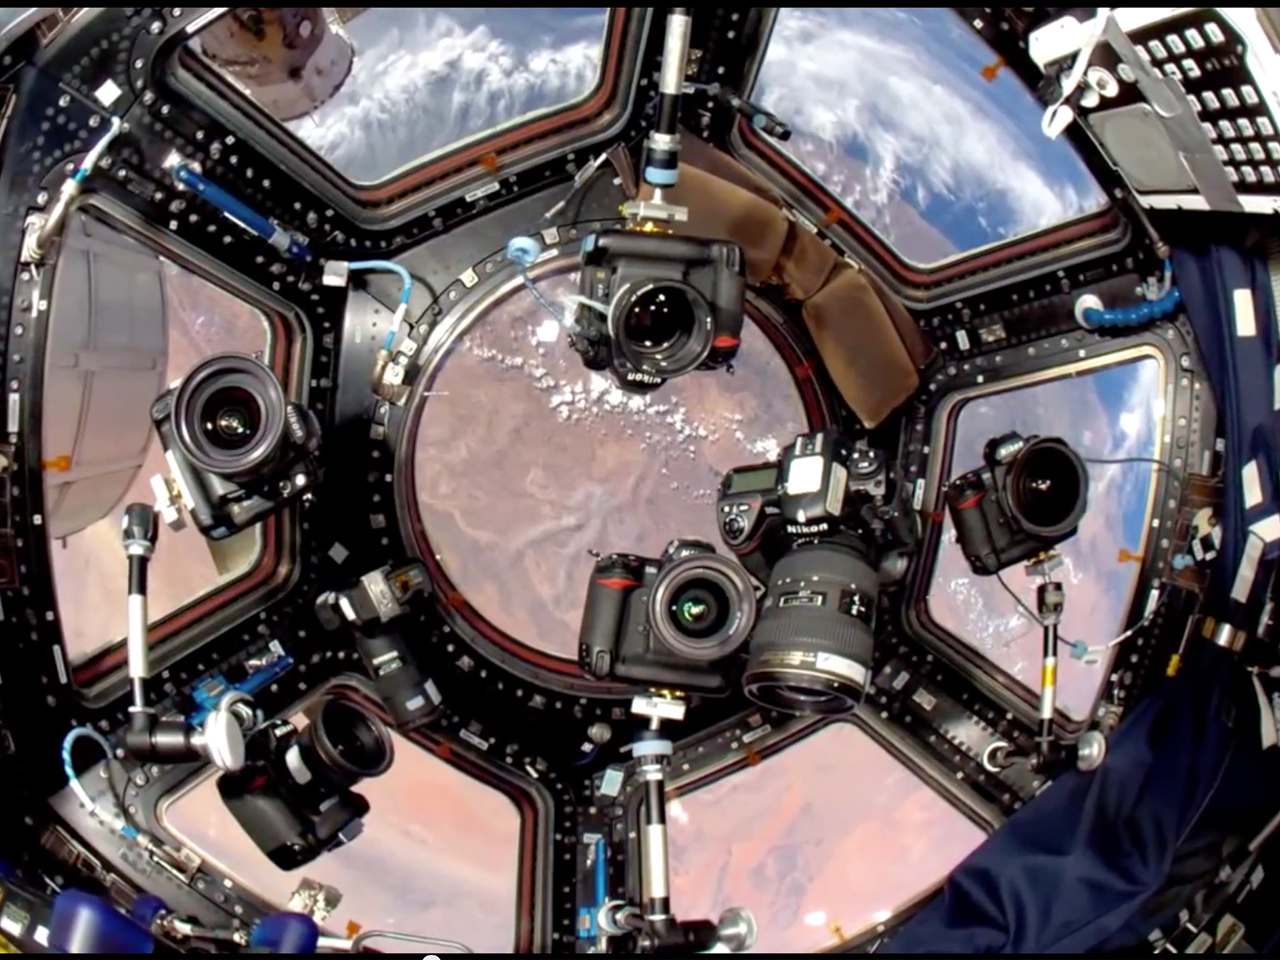 NASA Space Photographer , Cupola Window Camera Setup Astronaut Cameraplex